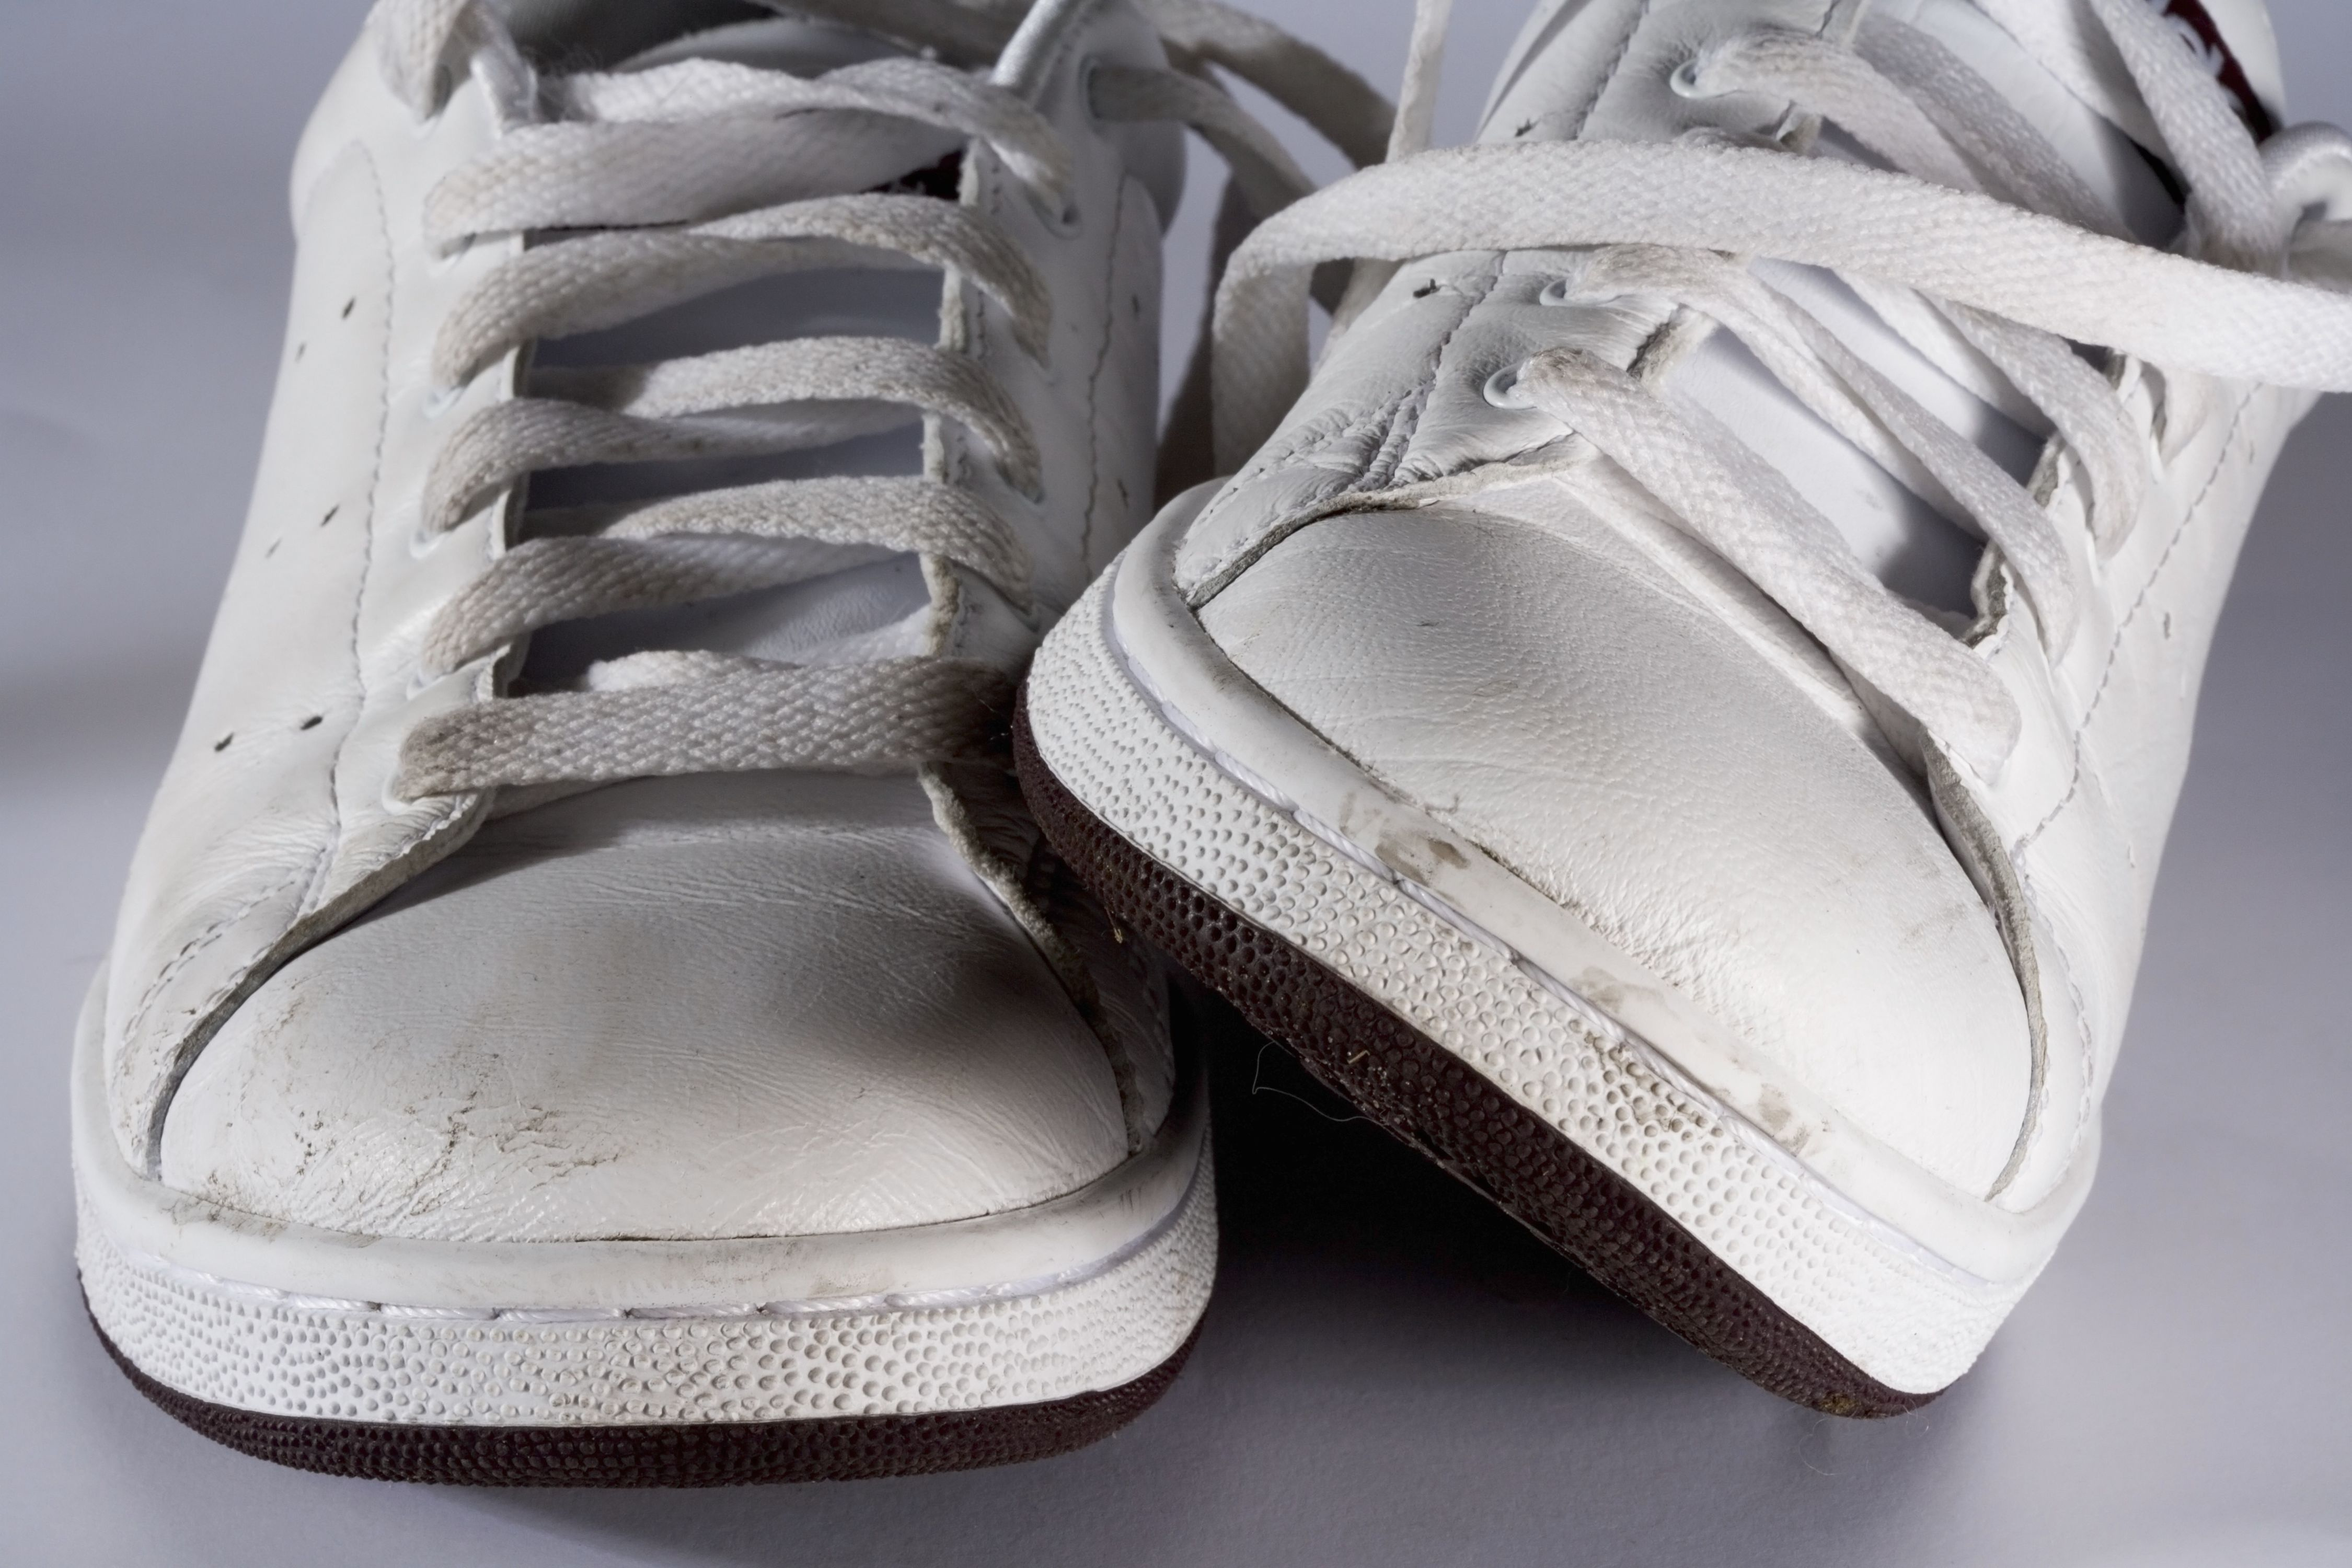 This Trick for Cleaning White Sneakers Will Blow Your Mind